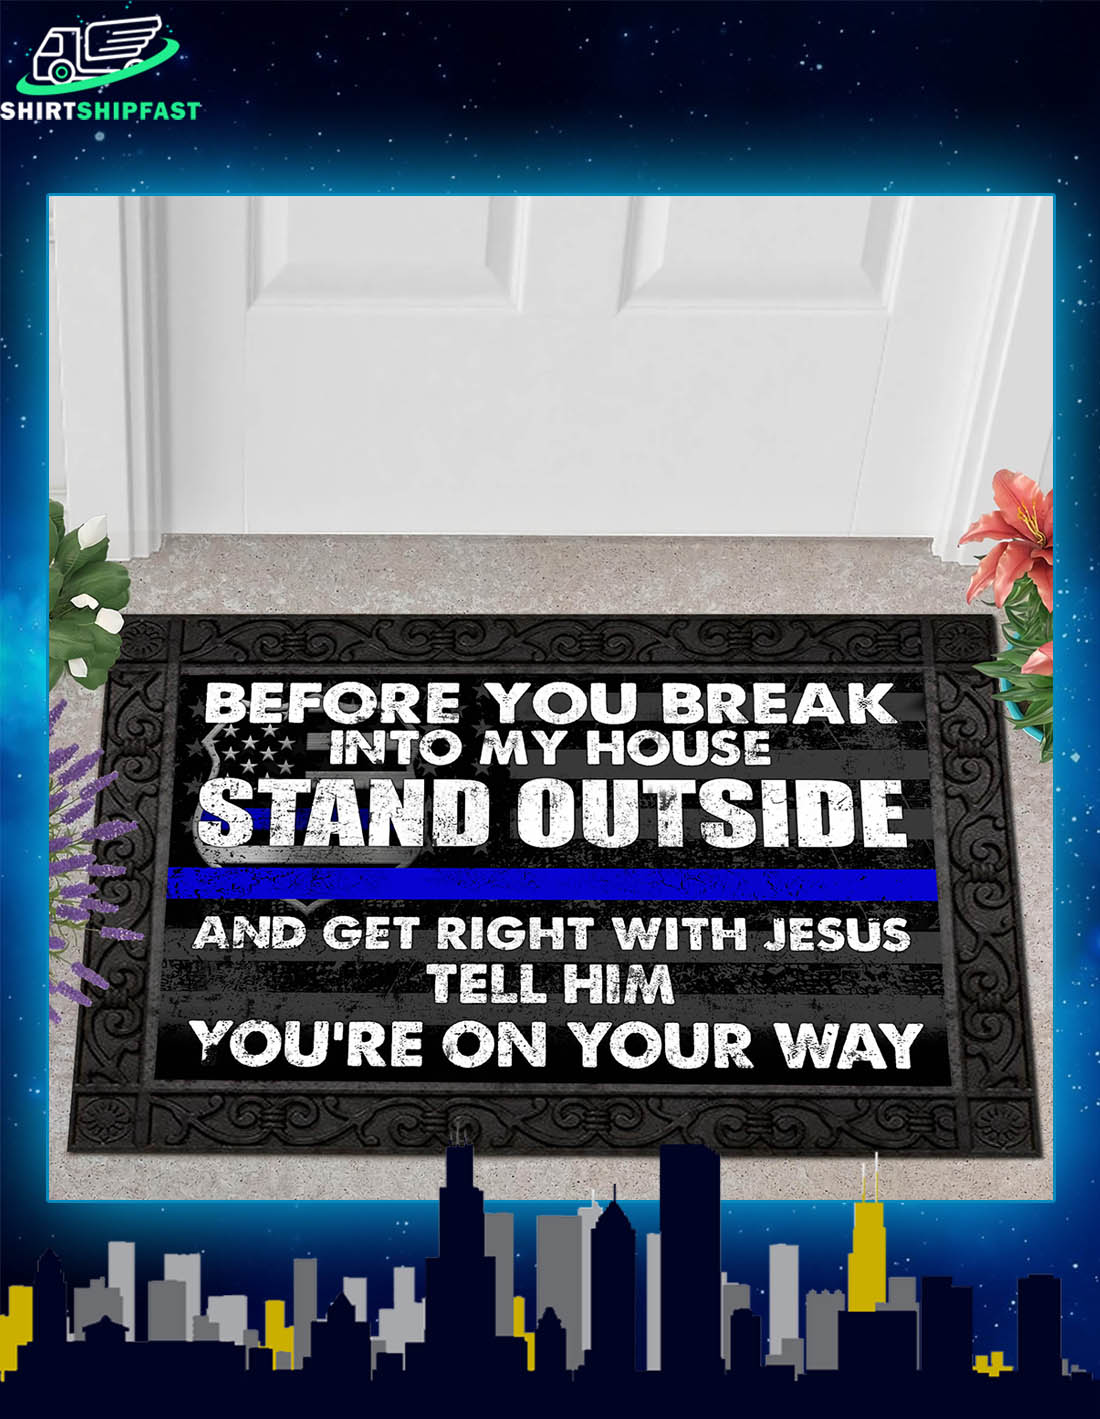 Police Before you break into my house stand outside and get right with Jesus doormat - Picture 2